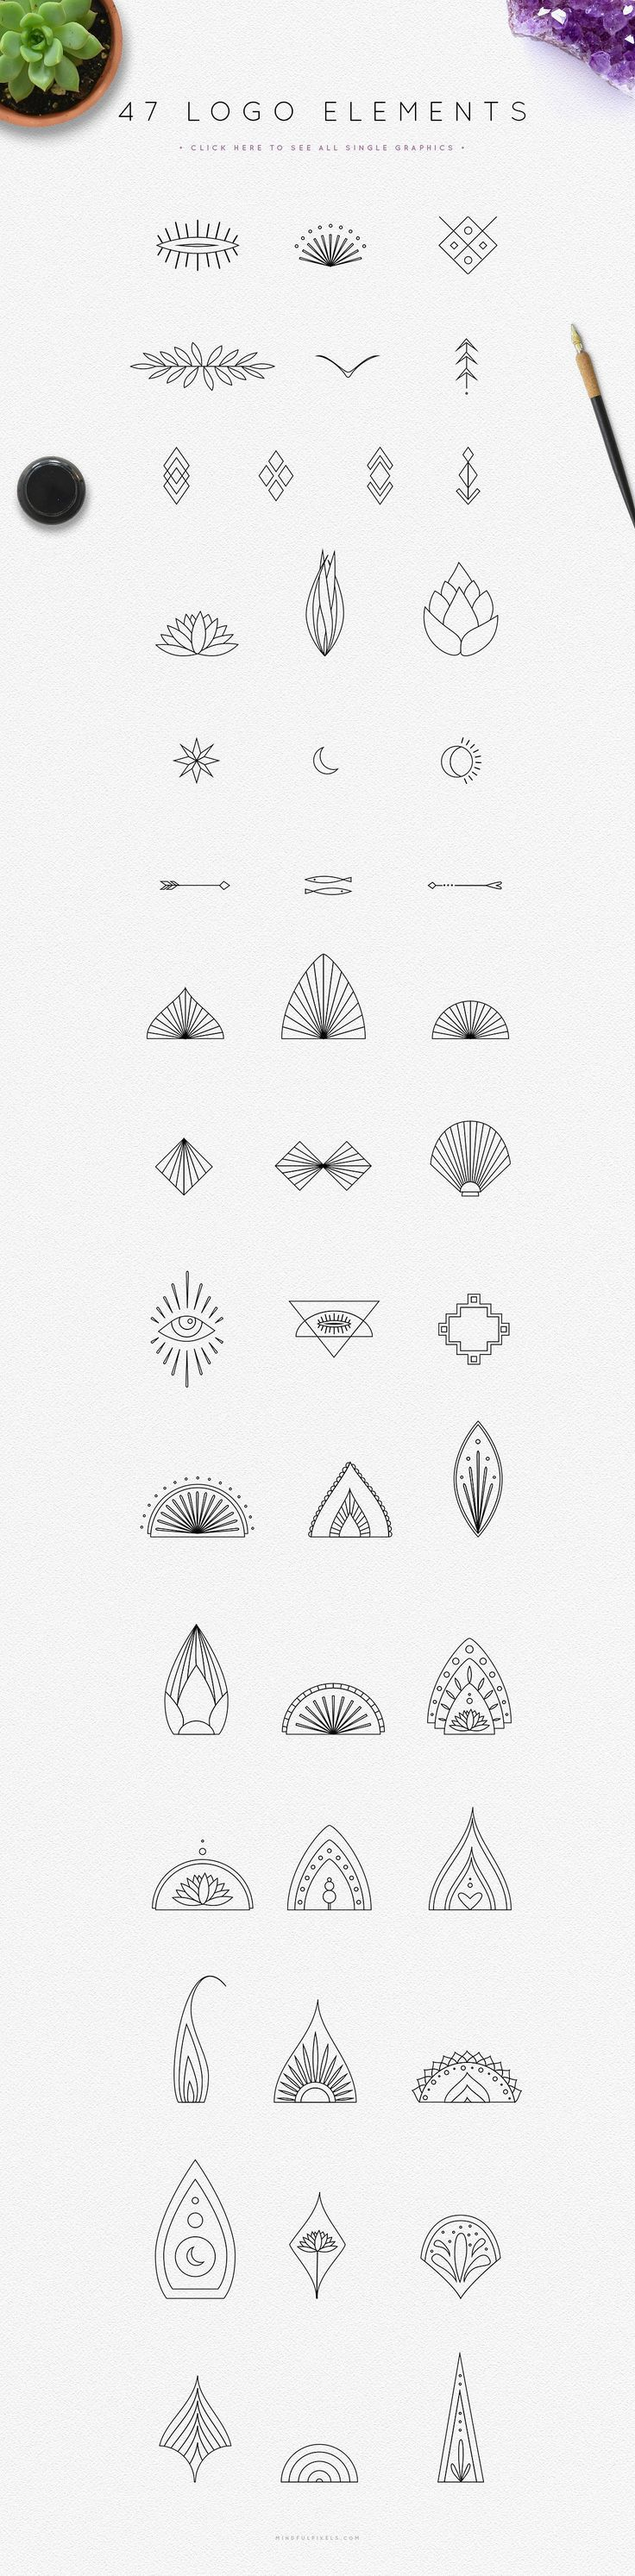 By using the elements from Mandala Logo Creator kit you can create consistent look & feel for your brand, website, and next creative project.